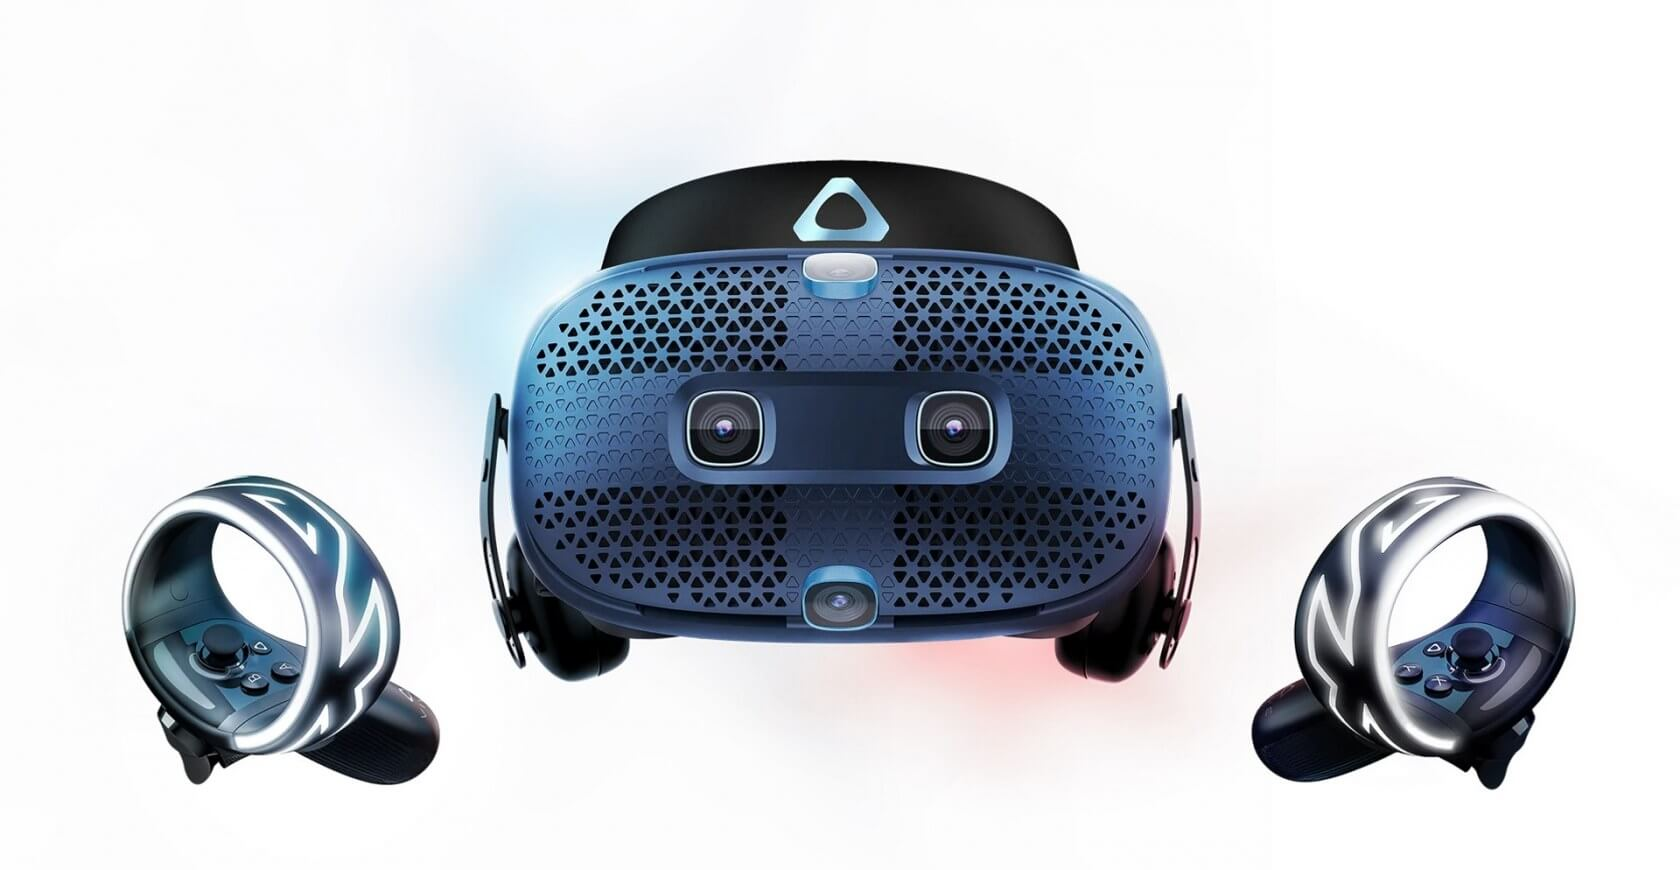 HTC's Vive Cosmos VR headset features built in headphones, inside-out tracking, and a modular design for $699